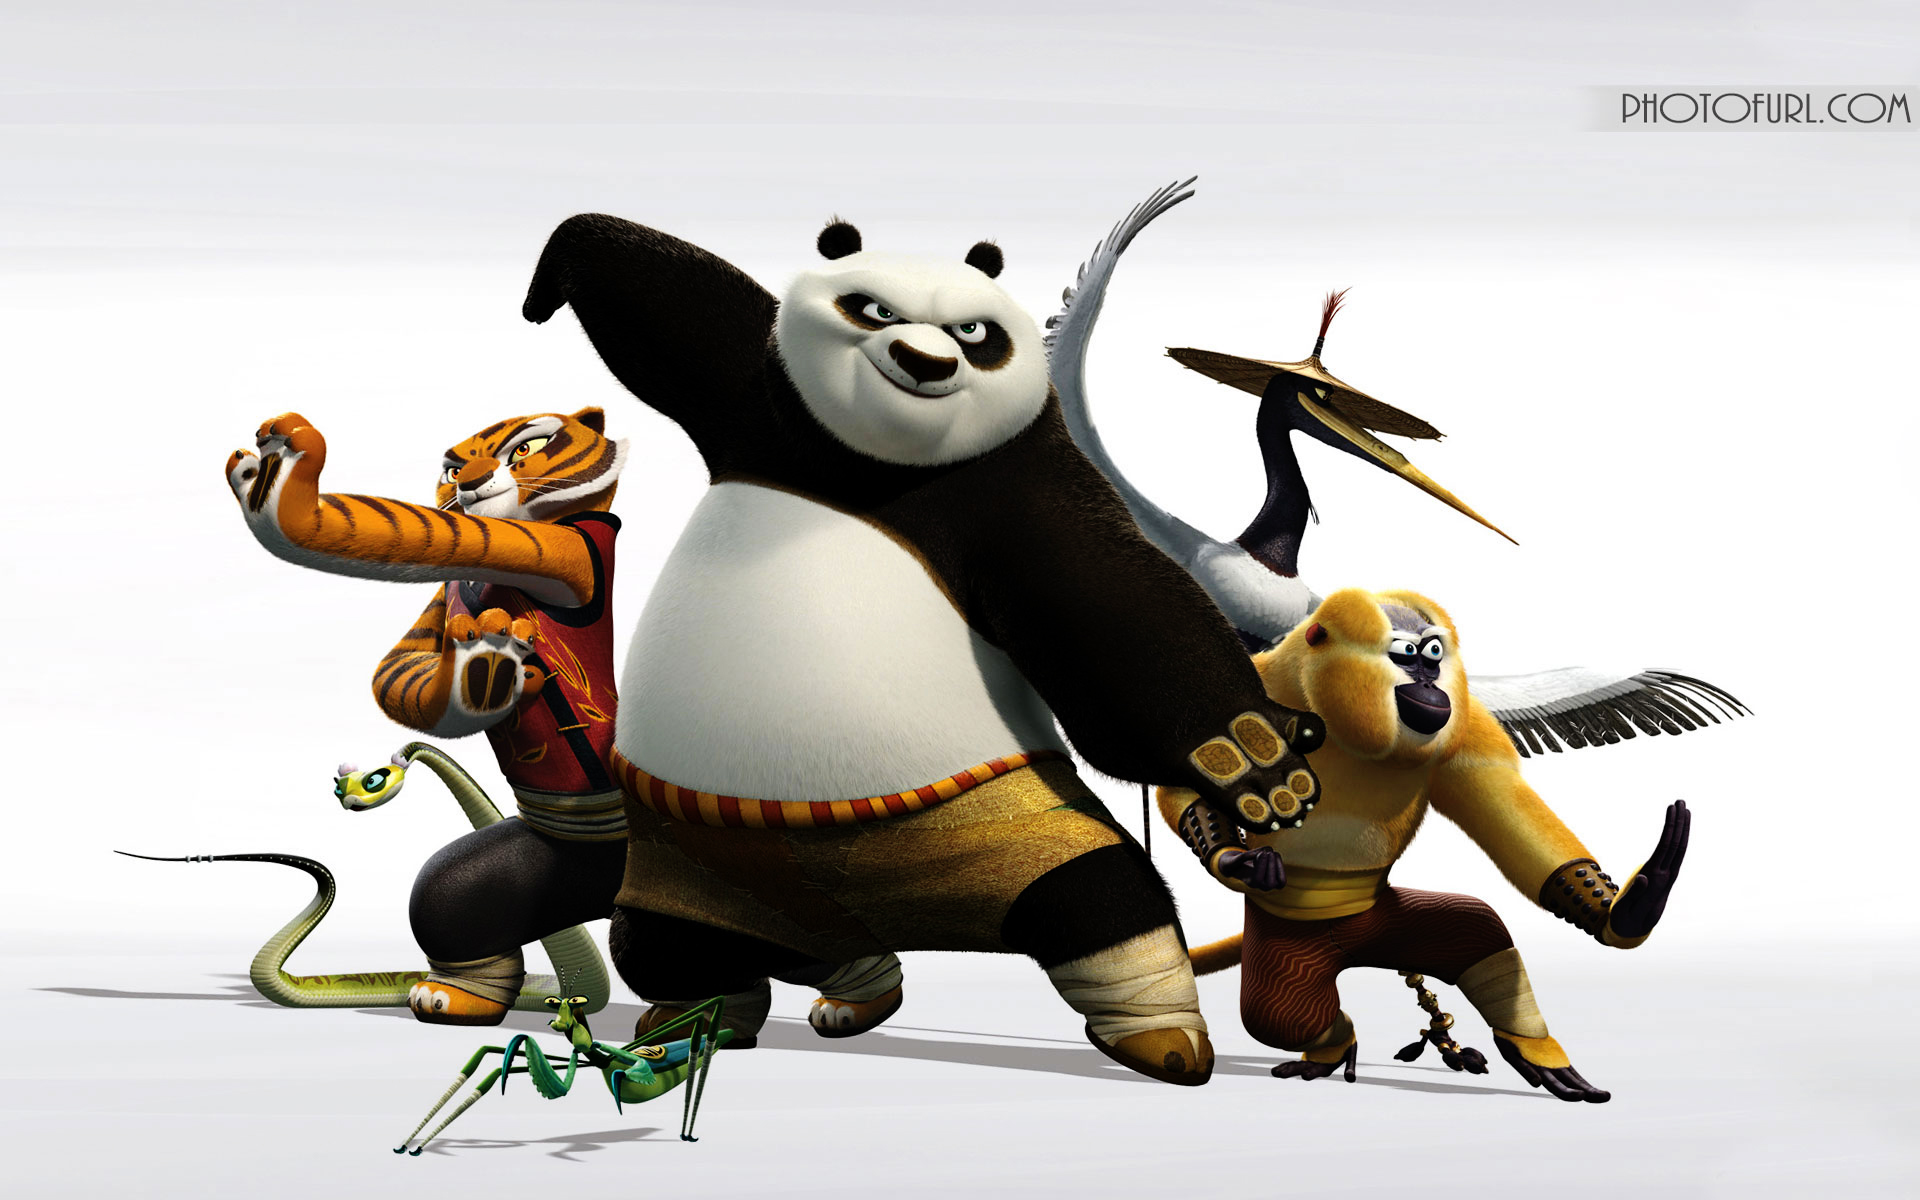 Animated Cartoon Movies Wallpapers Pictures The Hollywood Film For